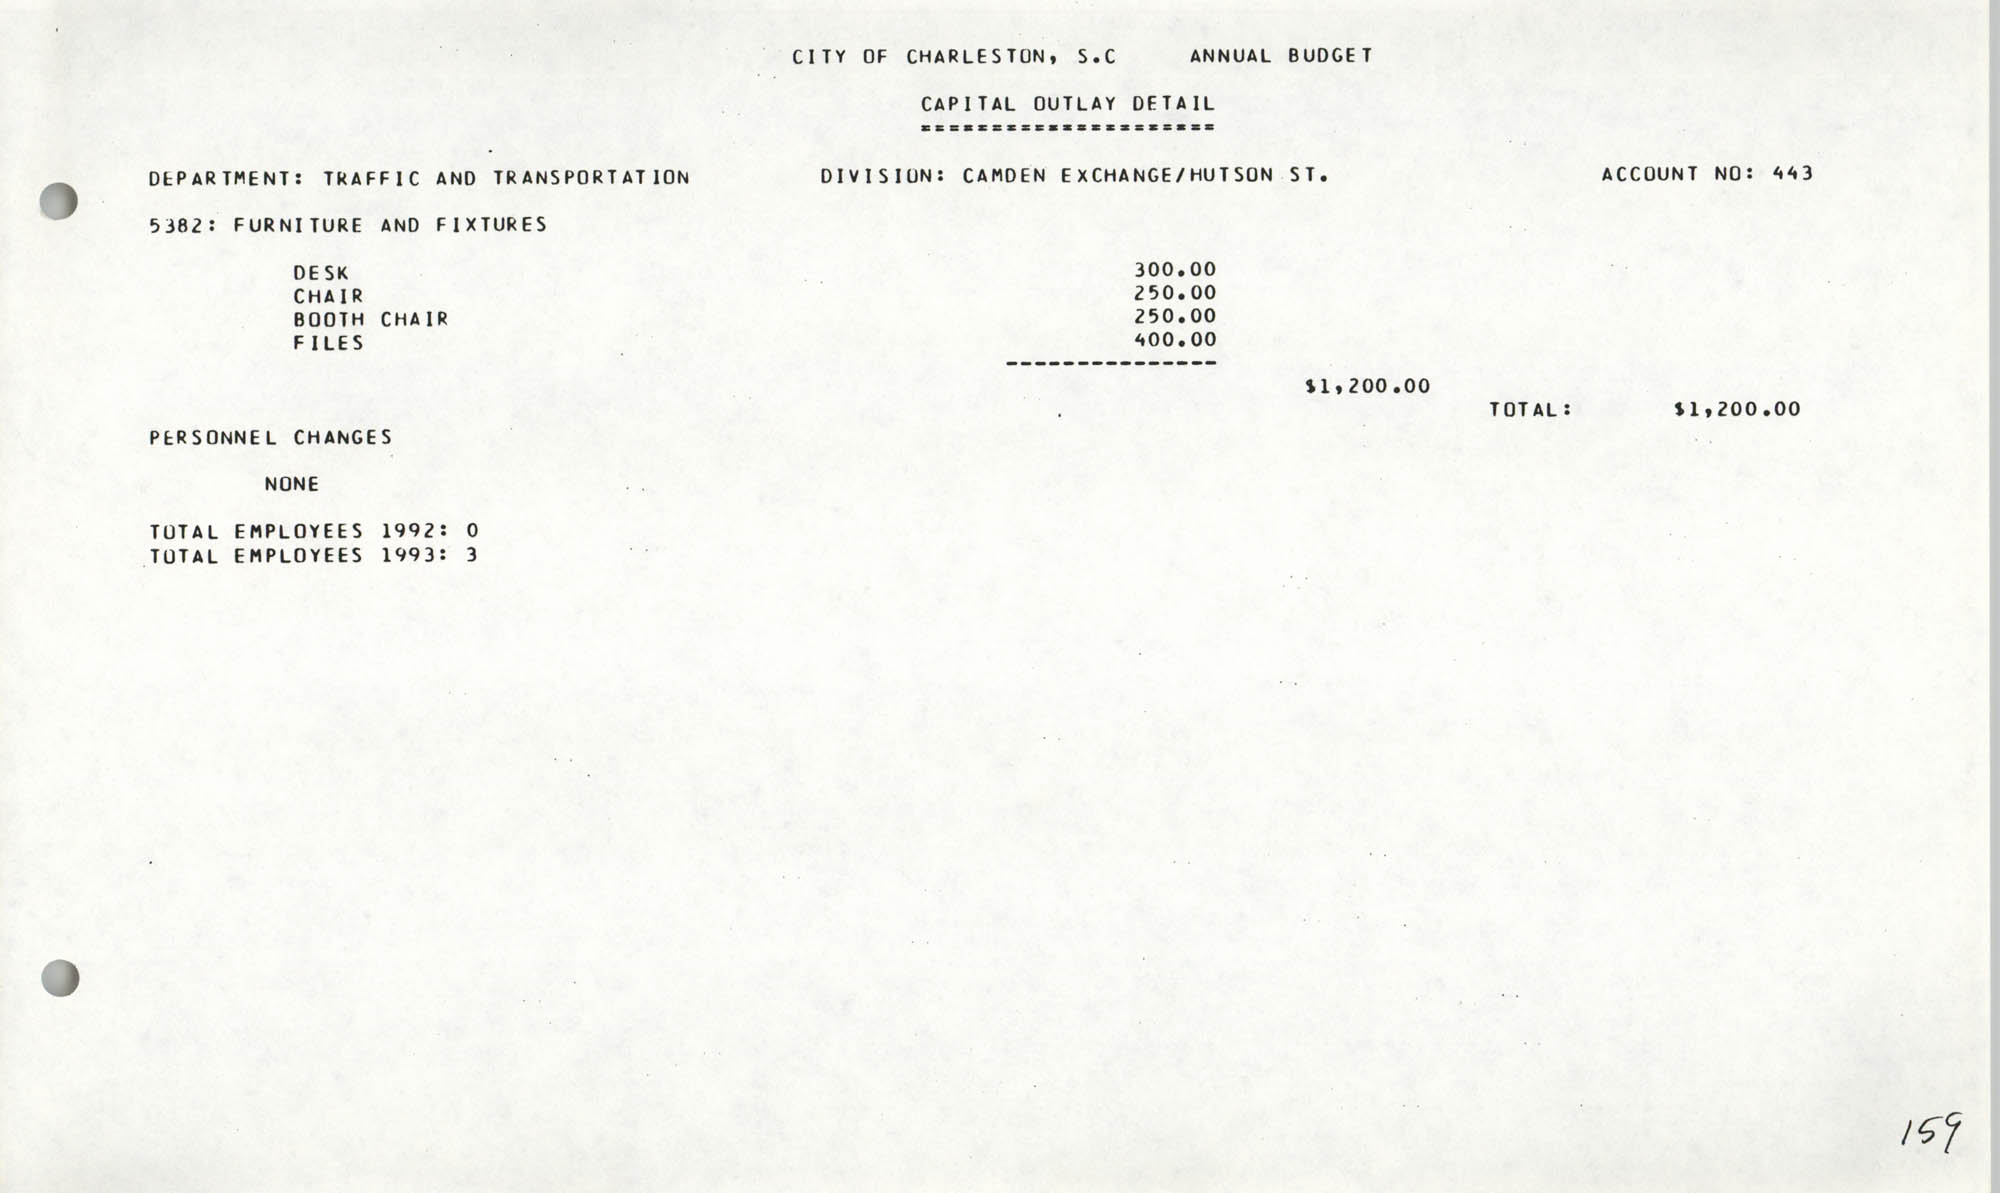 The City Council of Charleston, South Carolina, 1993 Budget, Page 159